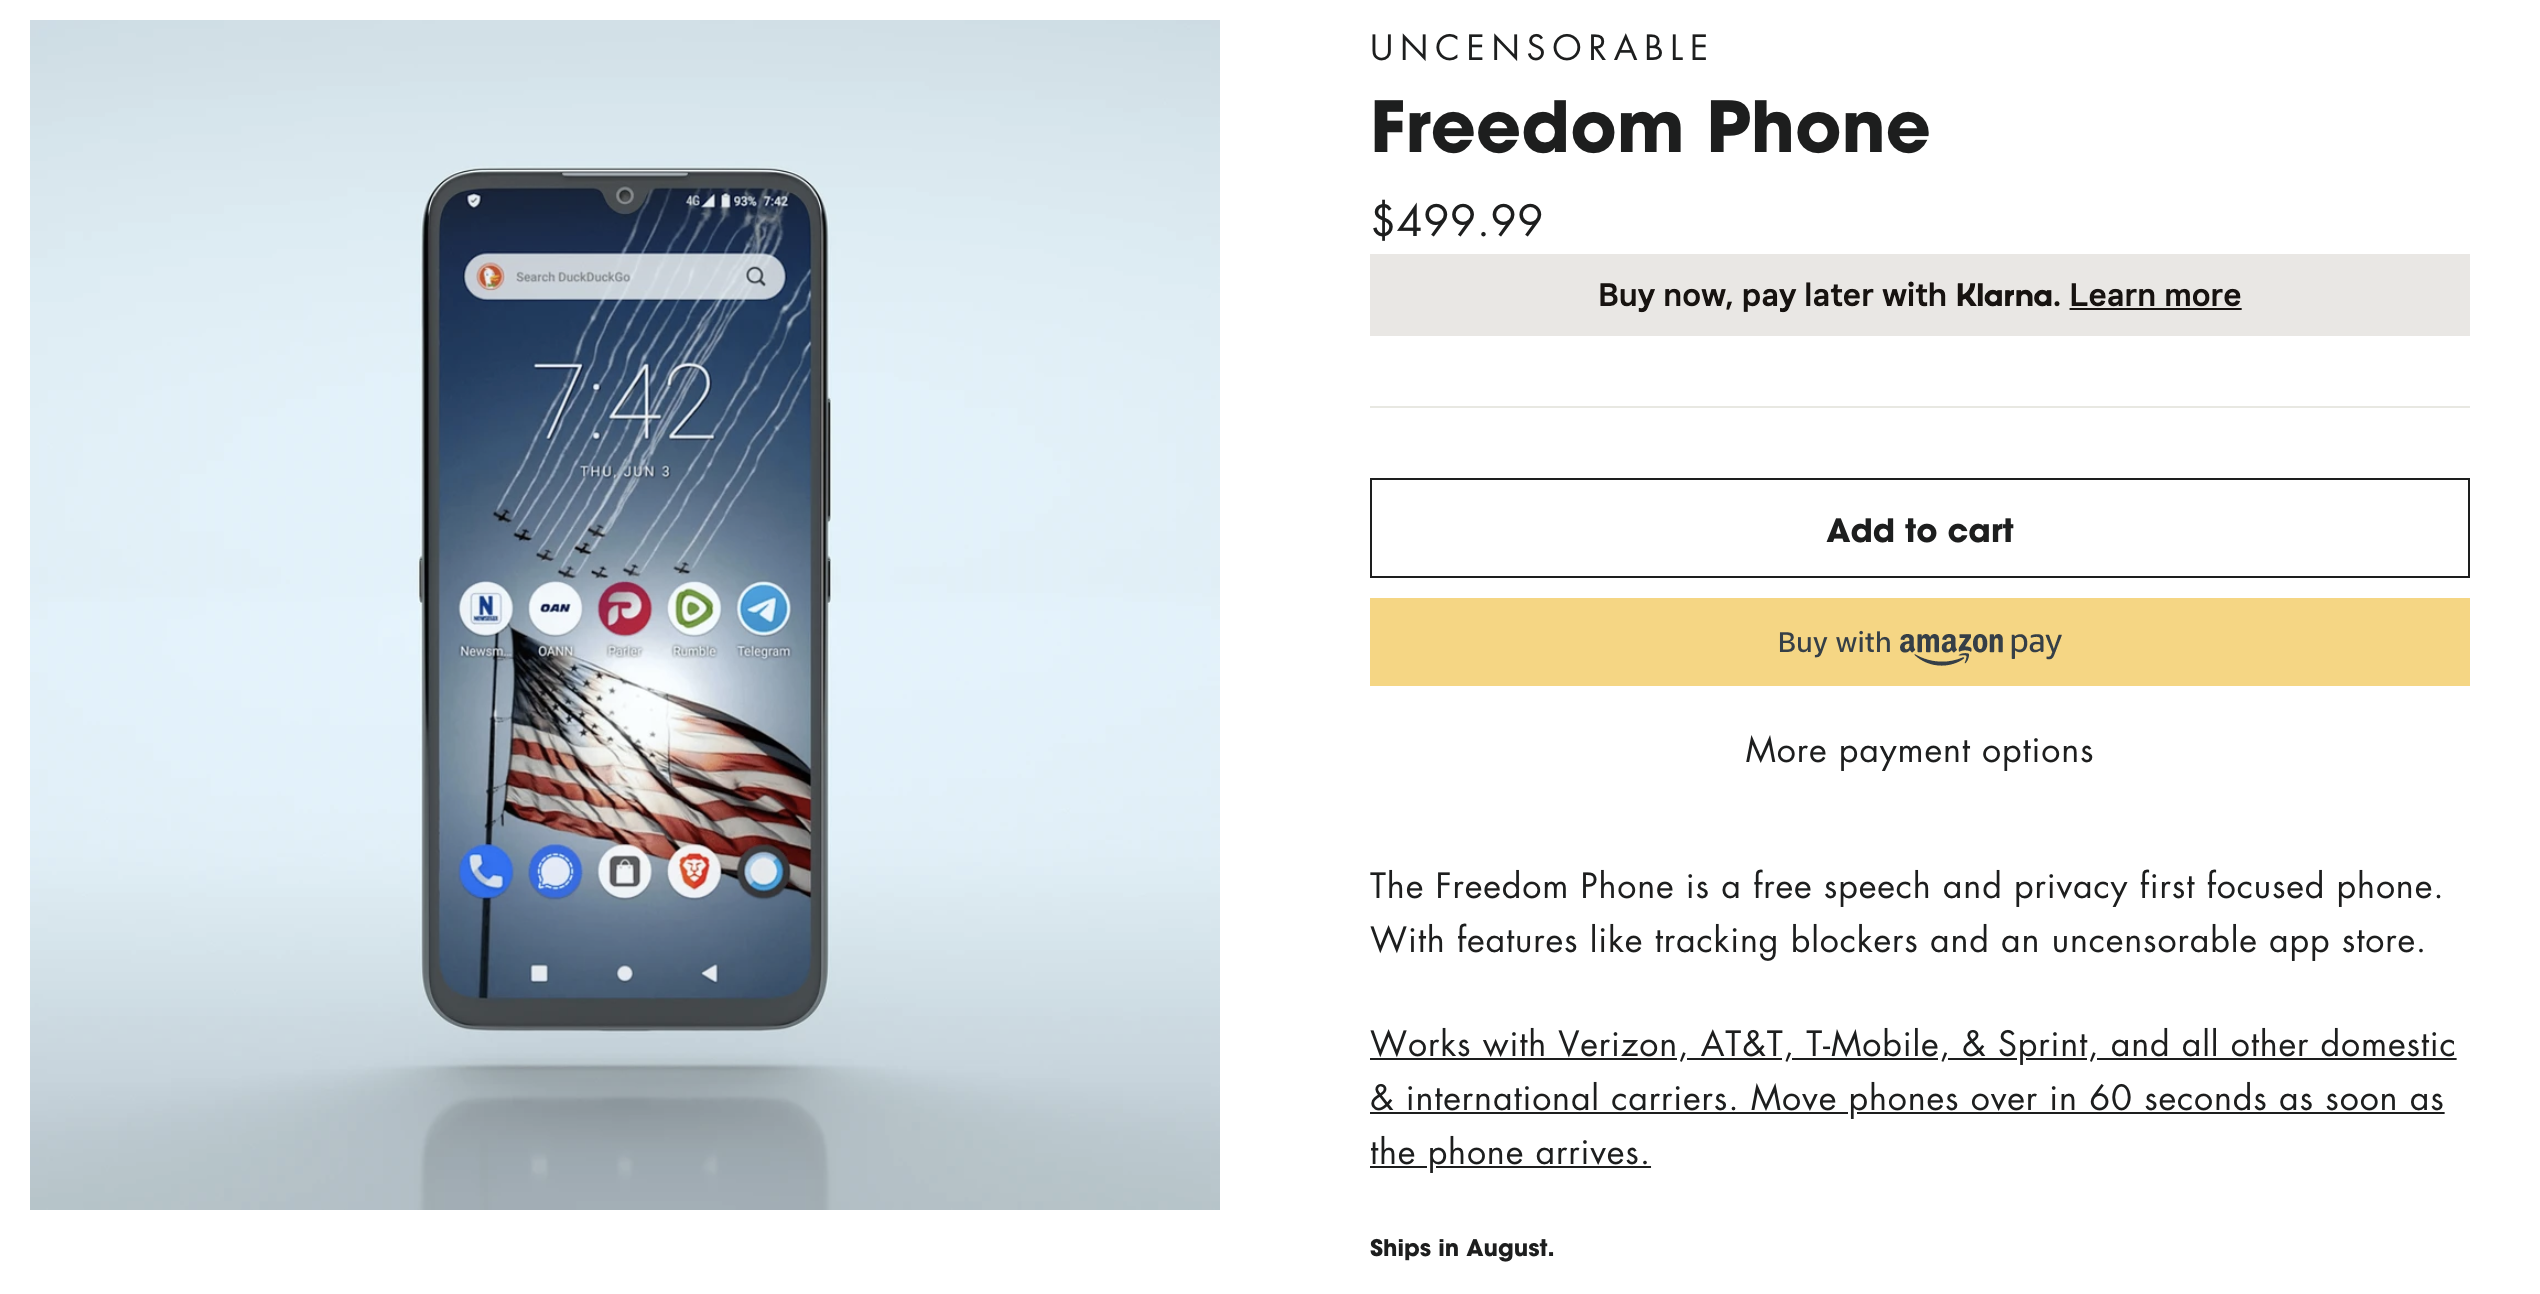 Freedom Phone 'Uncensorable' Raises a Series of Security Questions